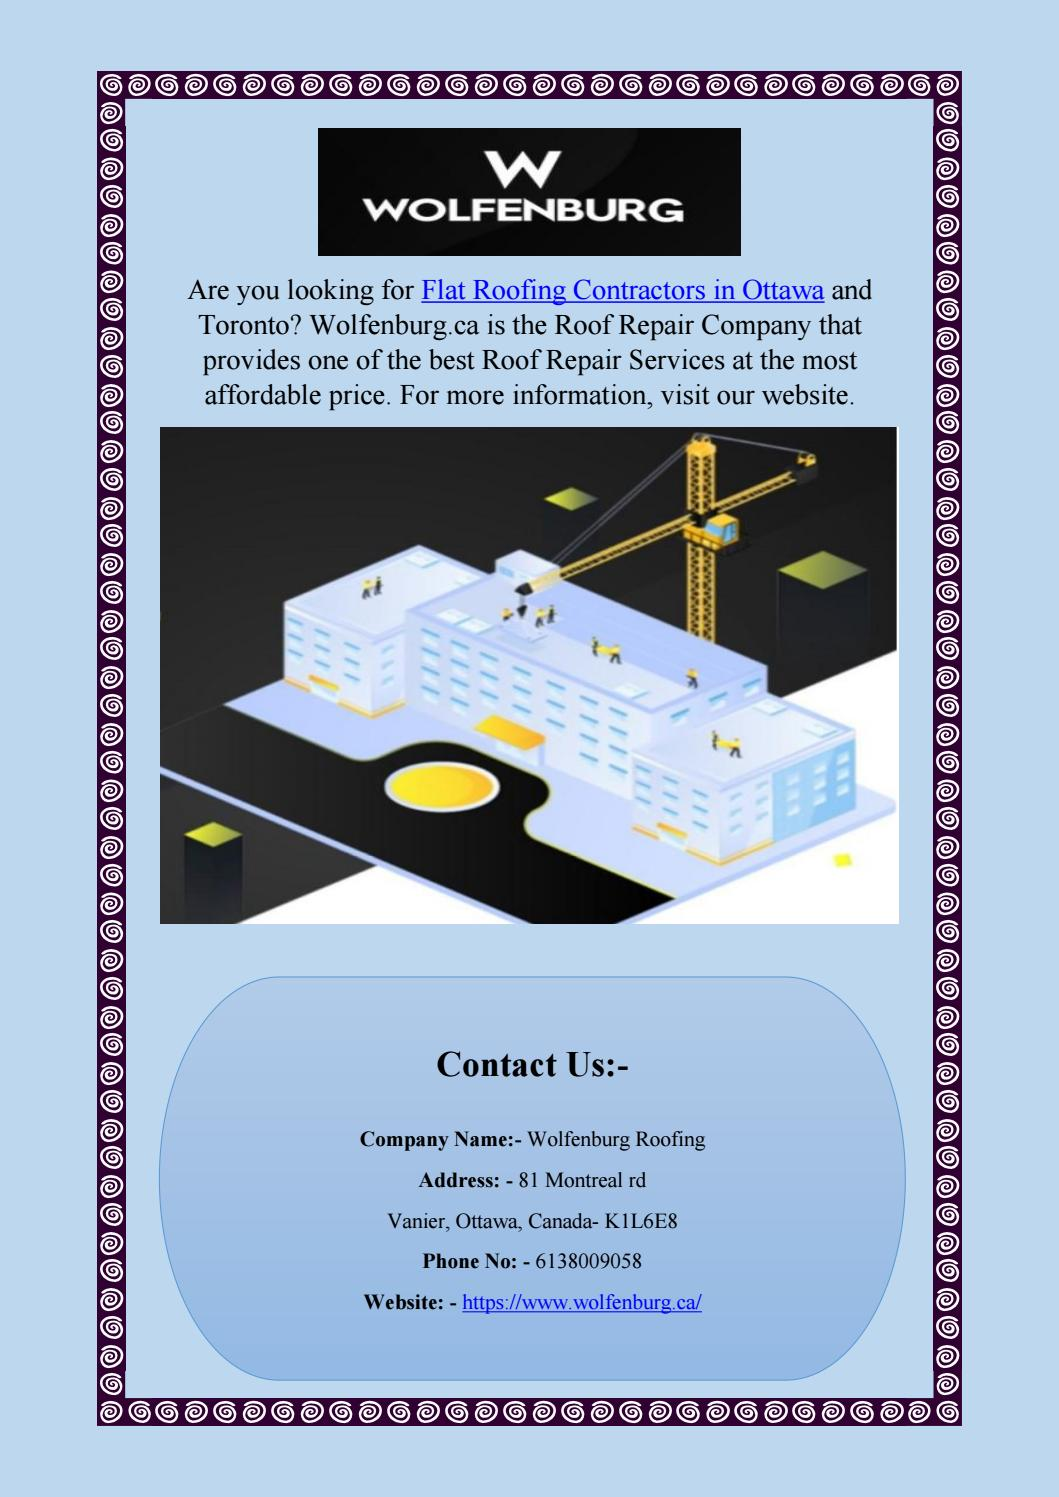 Commercial Roofing Contractors Near Me Wolfenburg Ca By Wolfenburg Roofing Issuu